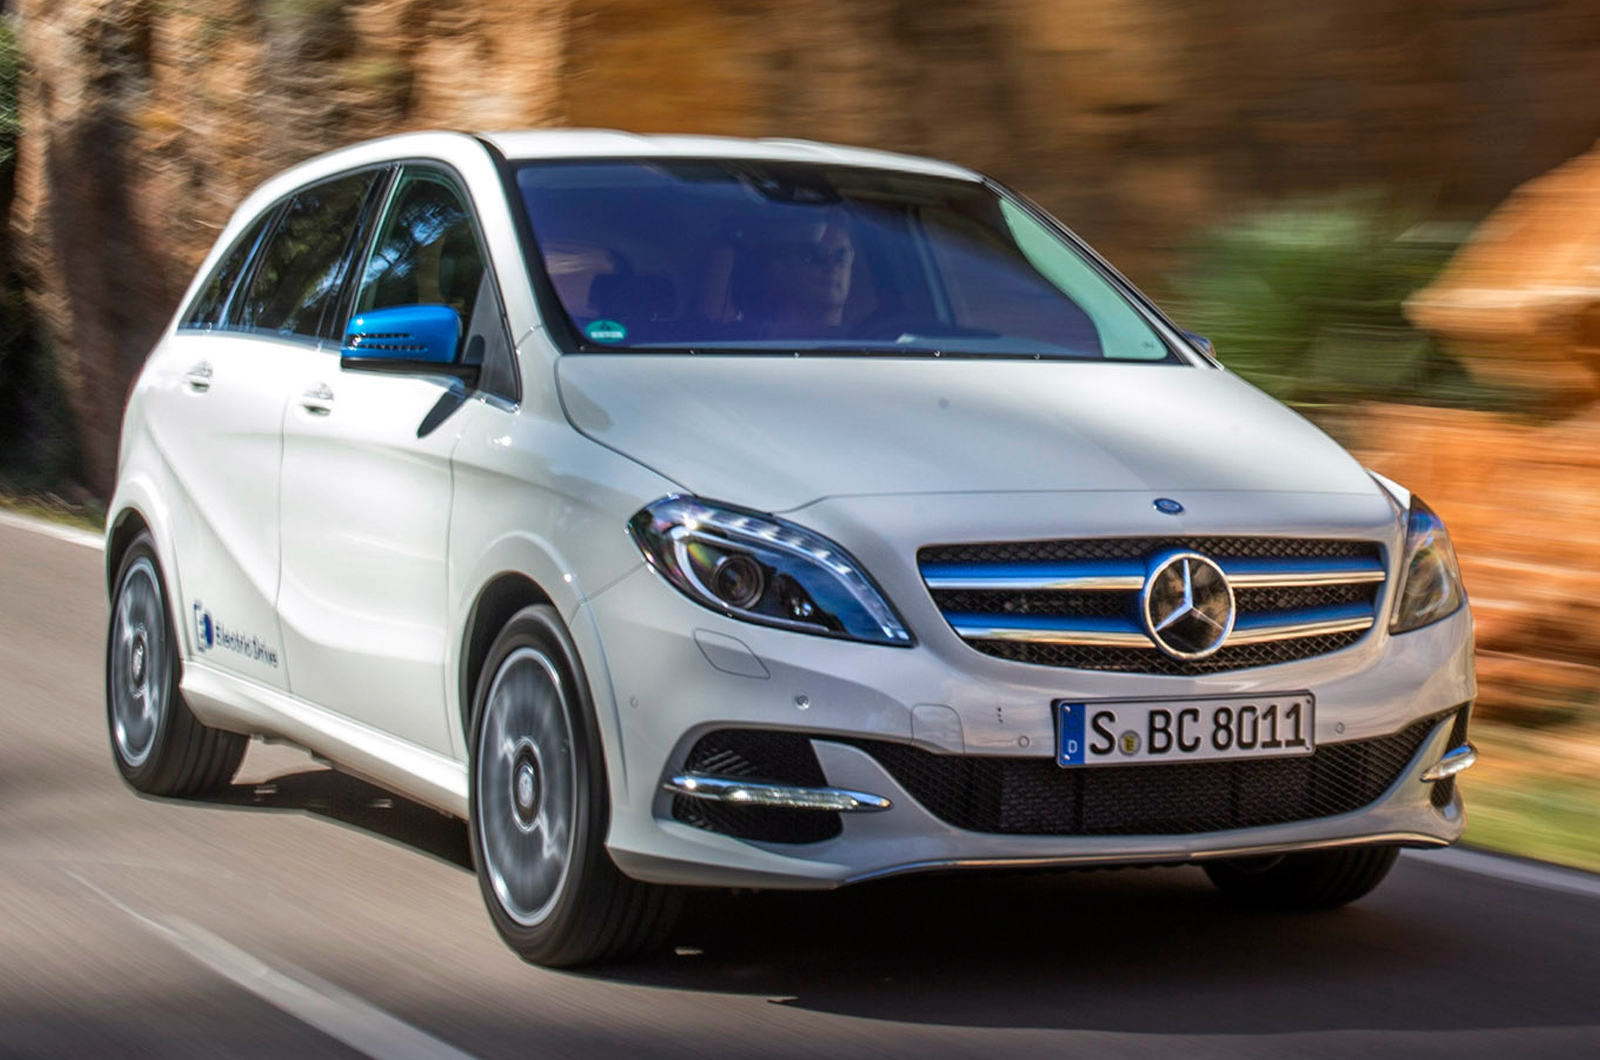 Mercedes Benz B Class Electric Drive 2015 2017 Review 2021 Autocar